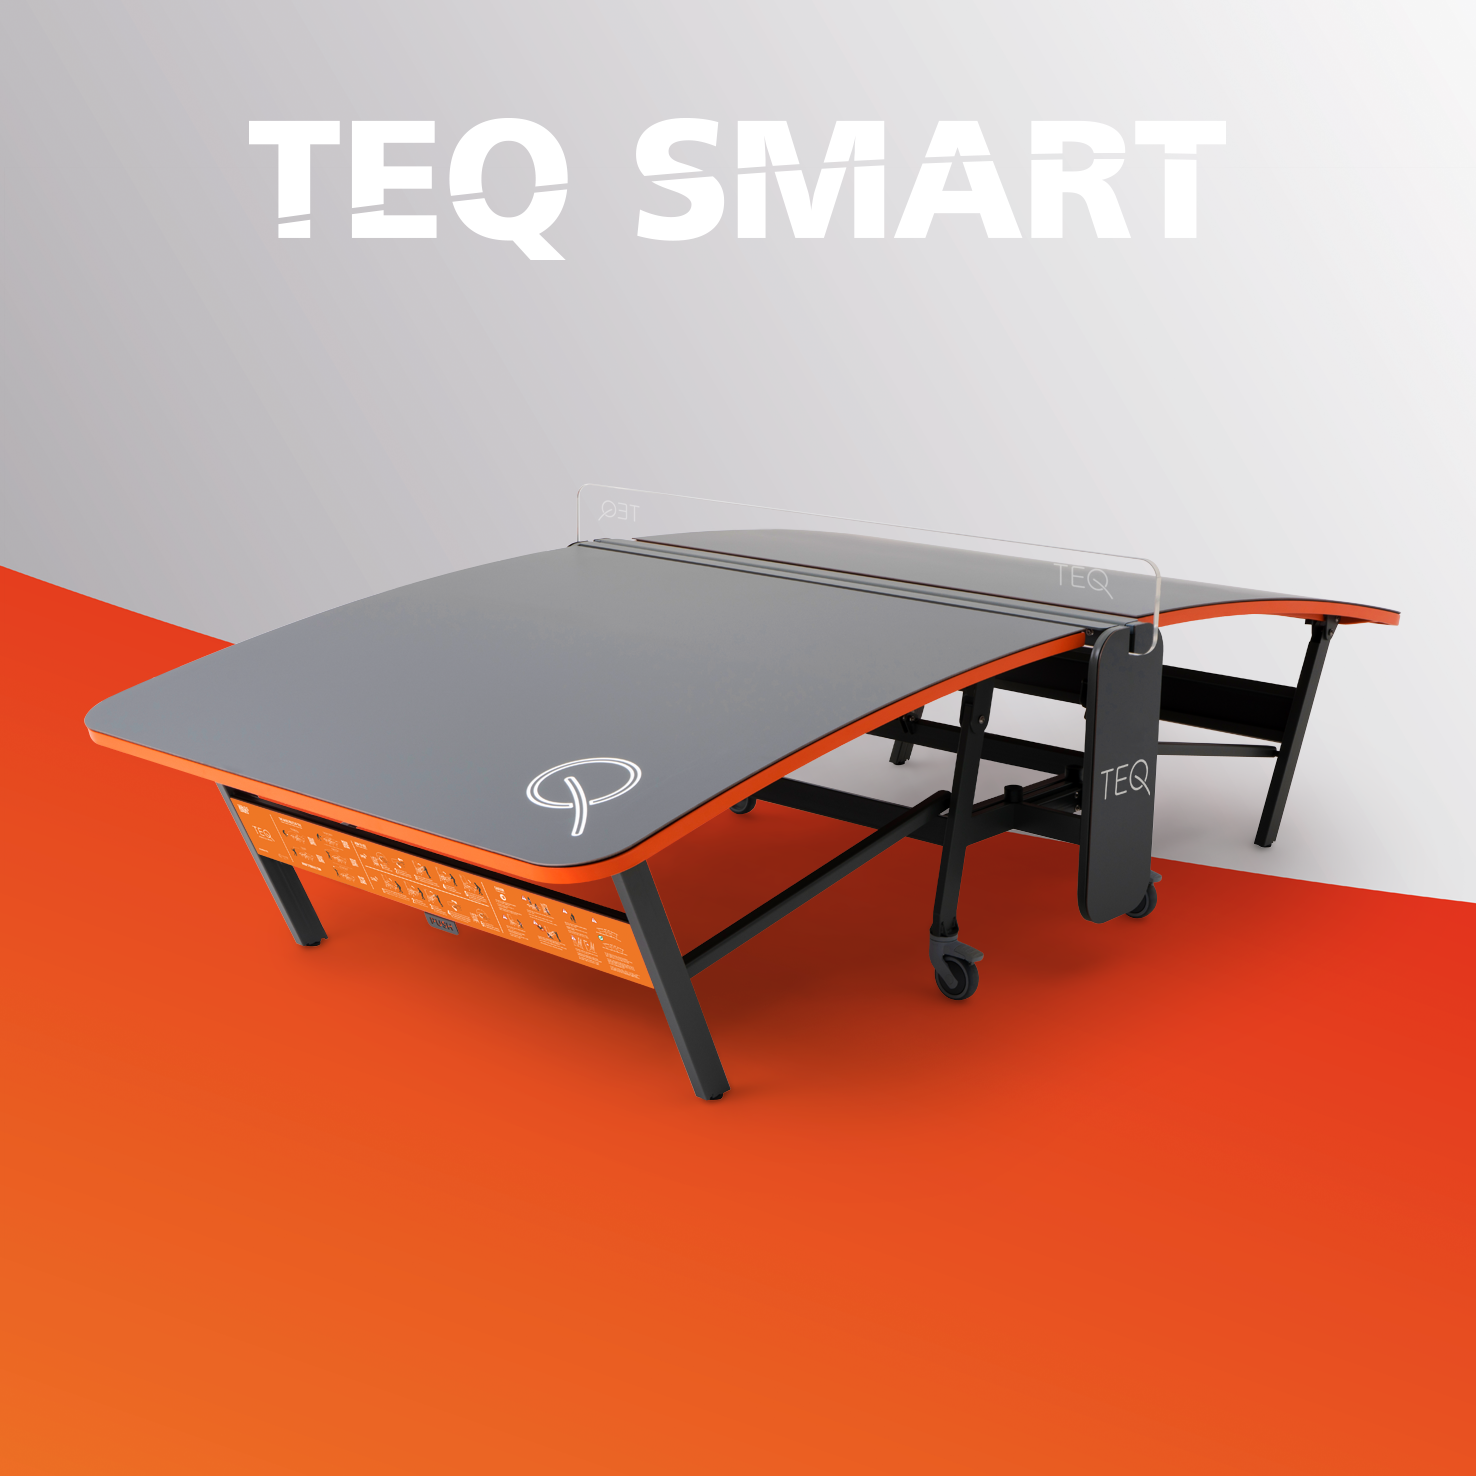 Teqball Teq Smart Table